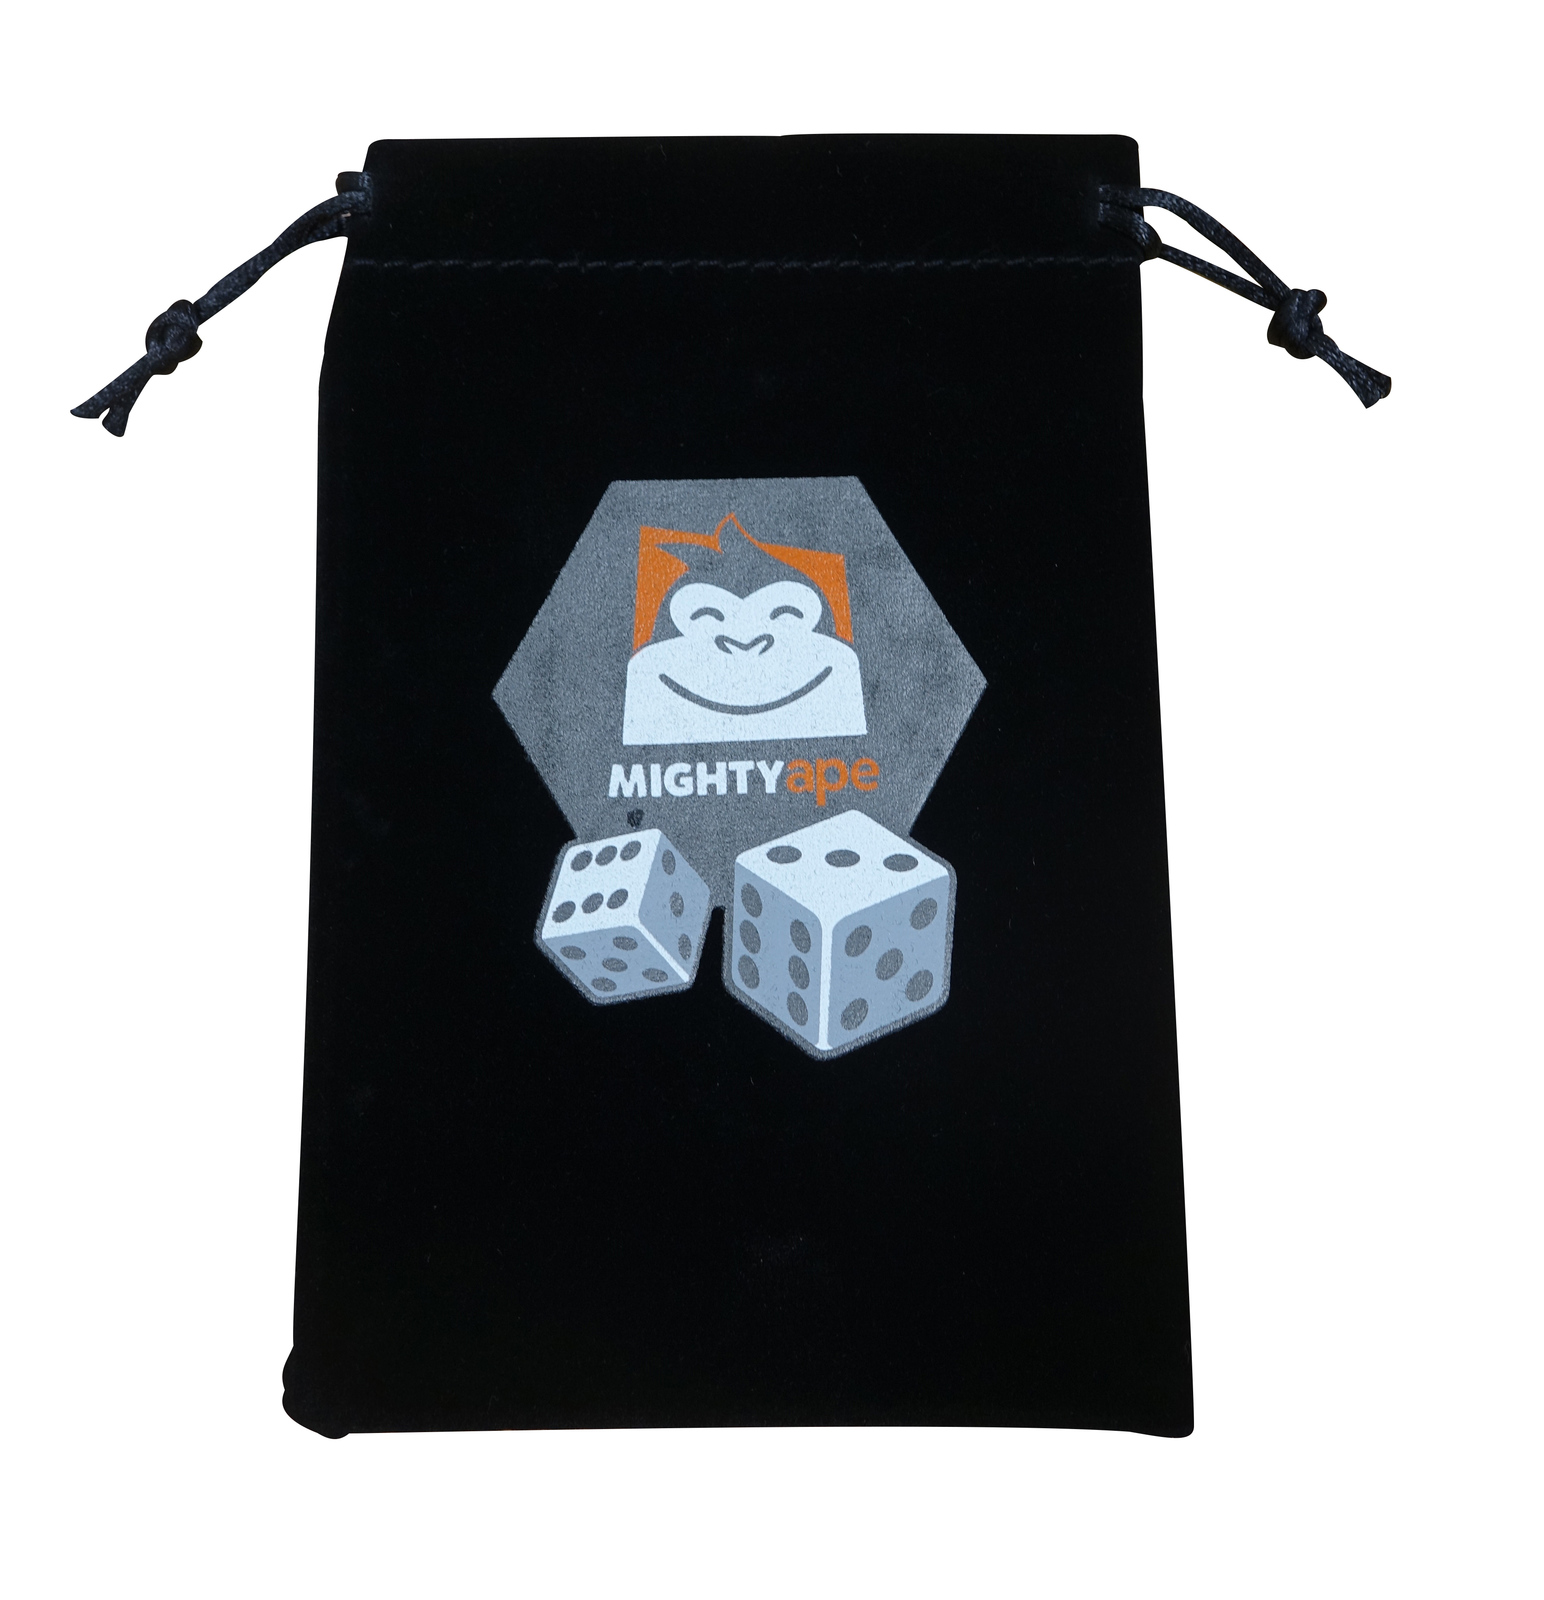 Mighty Ape Drawstring Component/Dice Bag - Large image